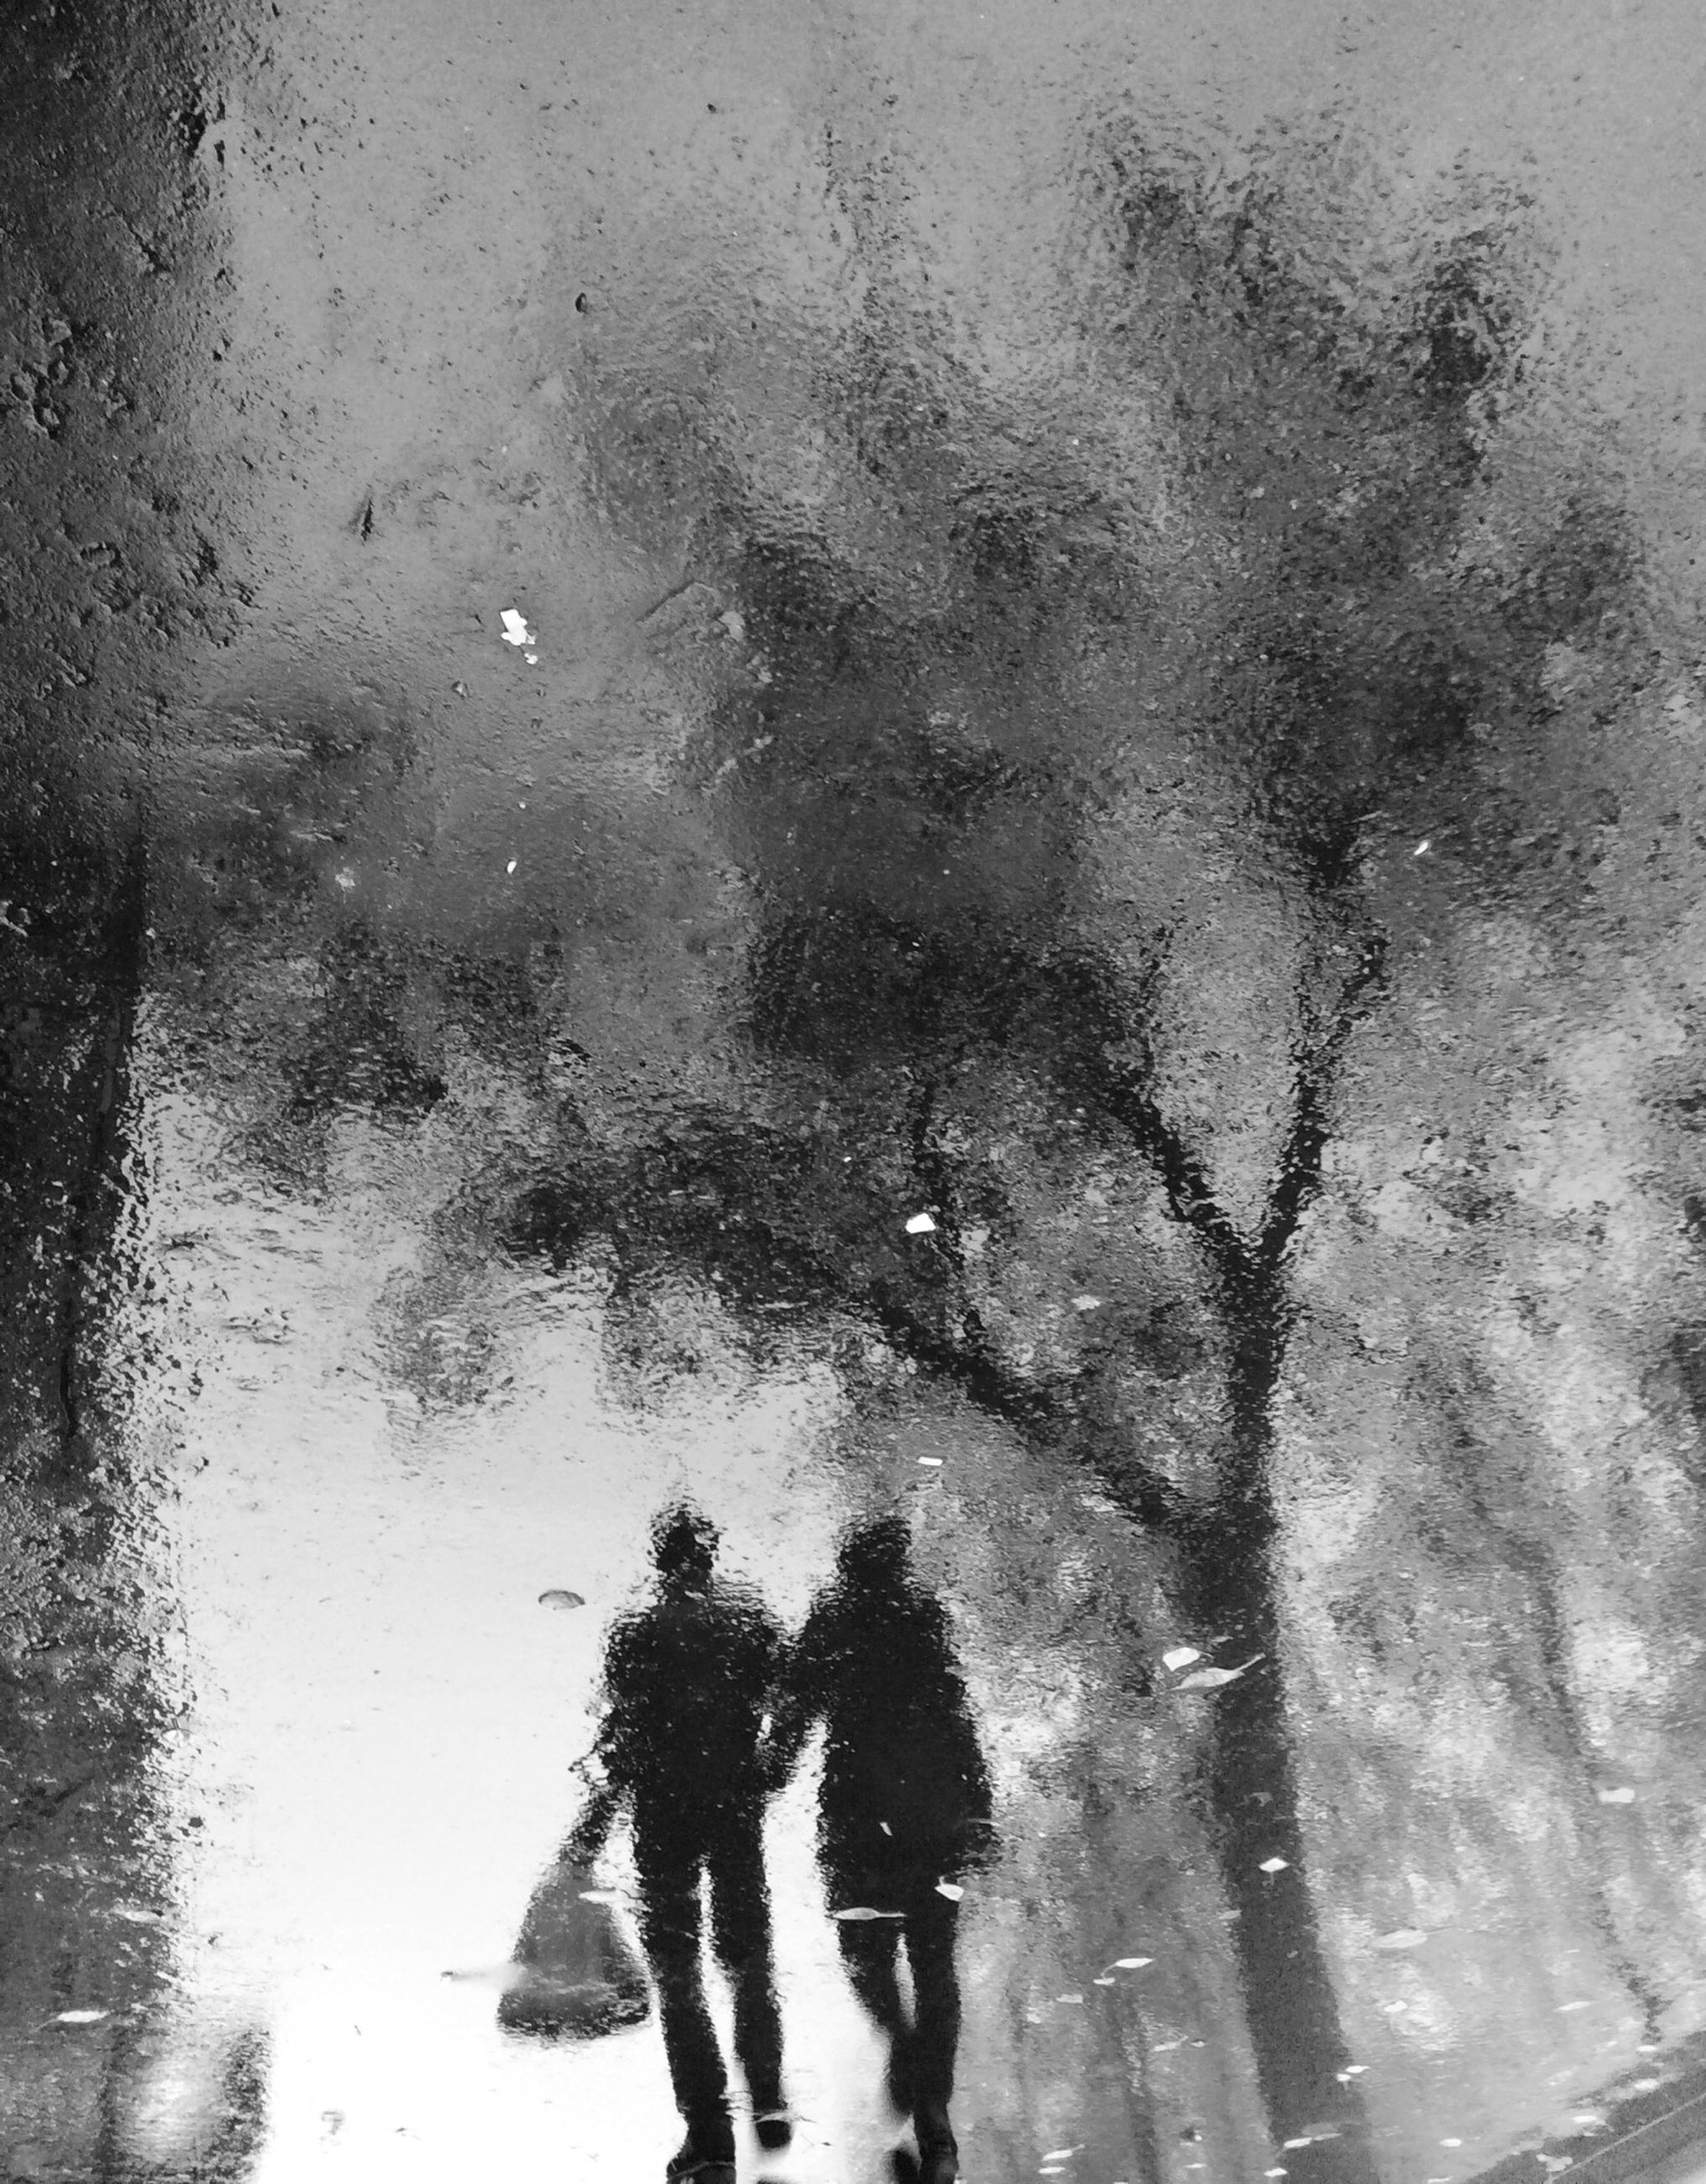 water, wet, lifestyles, rain, reflection, season, leisure activity, puddle, weather, walking, standing, silhouette, drop, men, street, high angle view, monsoon, person